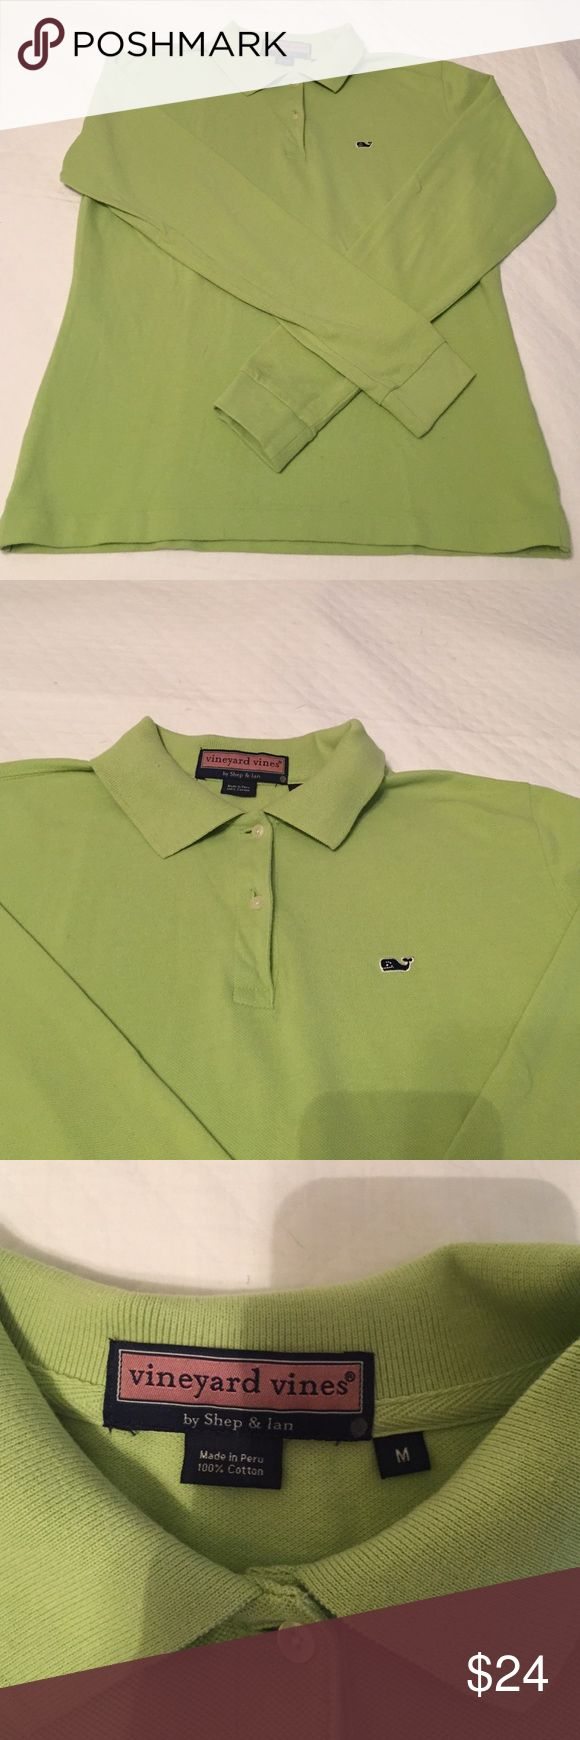 Vineyard Vines Size M Long Sleeve Polo Vineyard Vines long sleeve women's polo size medium. Never worn! Perfect condition. I bought this at the outlet for $35 (originally $70) and didn't try it on. The sleeves are too short for me because I'm 6'2, and it is not returnable. Just trying to regain some of my losses  there is a little silver dot on the tag indicating it is from the outlet but there aren't any defects or stains. Vineyard Vines Tops